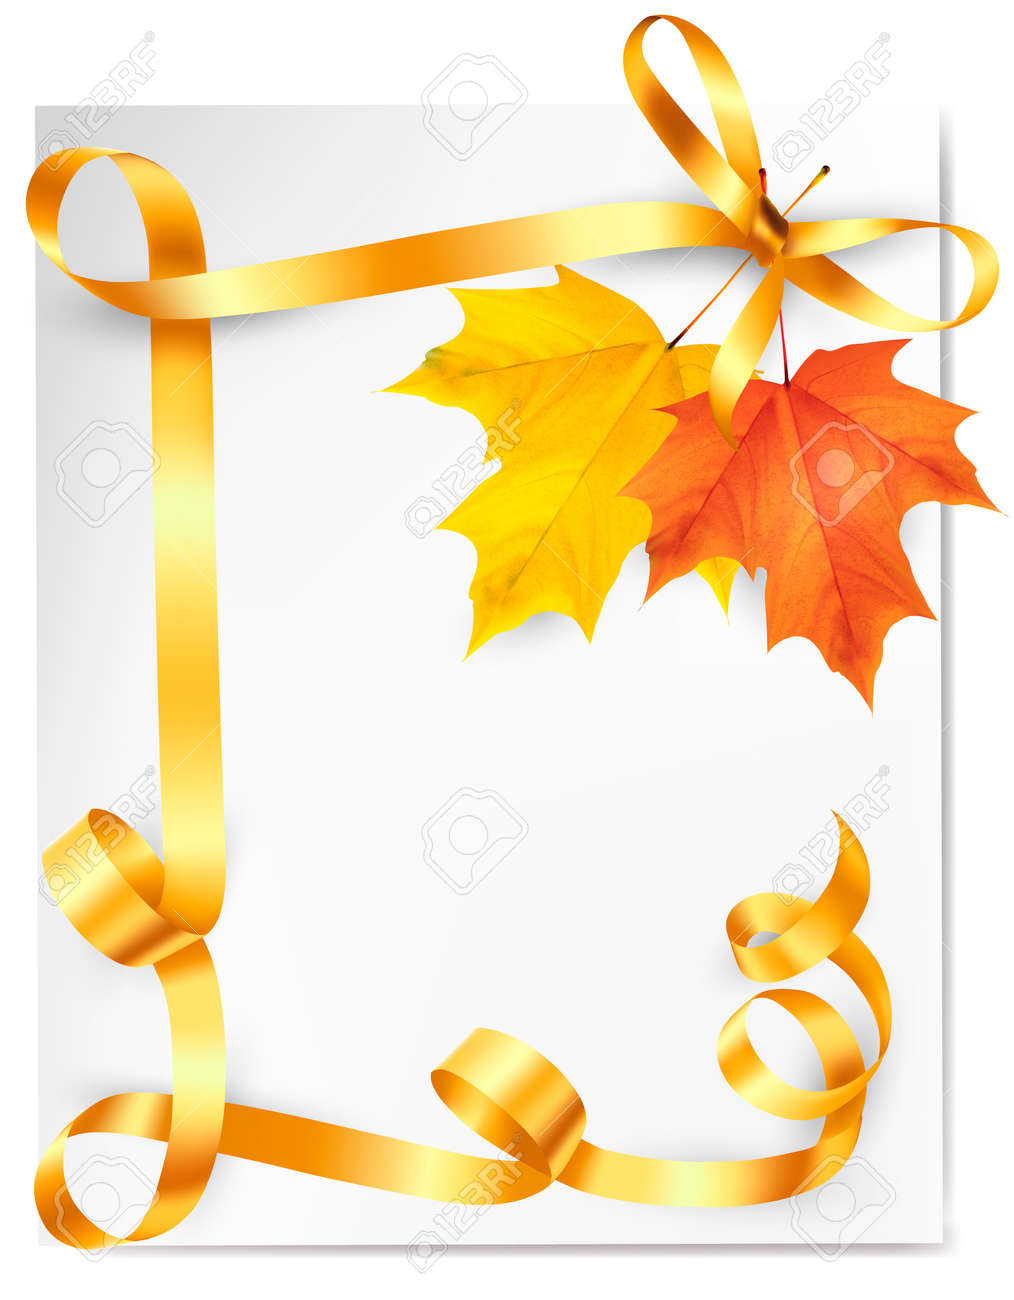 Autumn background with colorful leaves and gold ribbons. Back to school. Vector illustration Stock Vector - 21402356